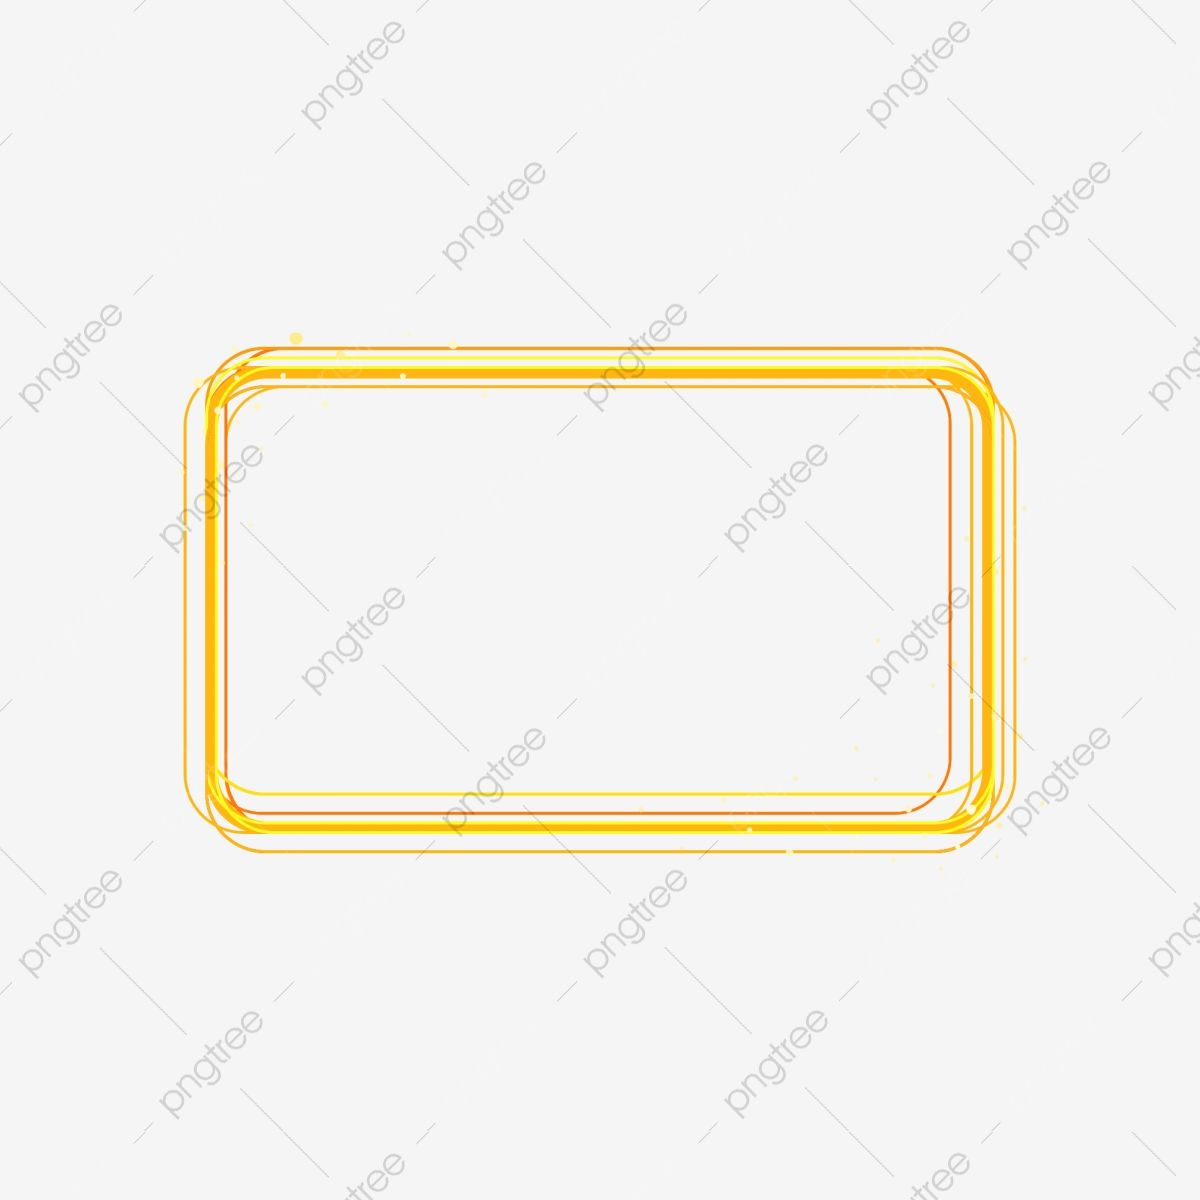 Yellow Video Frame Rectangle Clipart Yellow Rectangle Png Transparent Clipart Image And Psd File For Free Download Clip Art Clipart Images Comic Frame